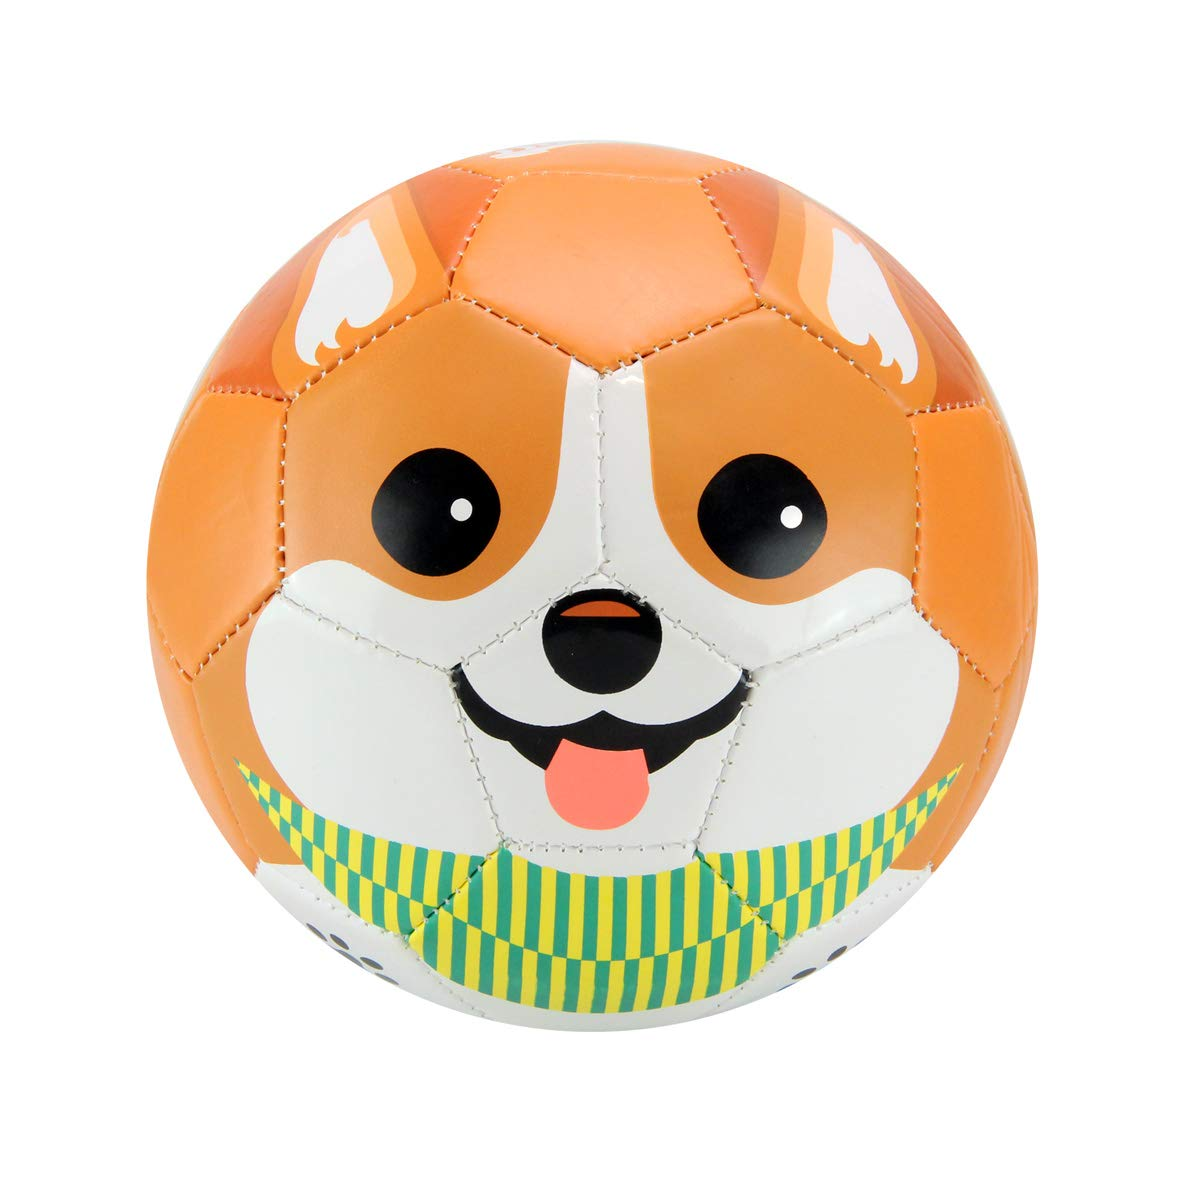 Daball Toddler Soft Soccer Ball